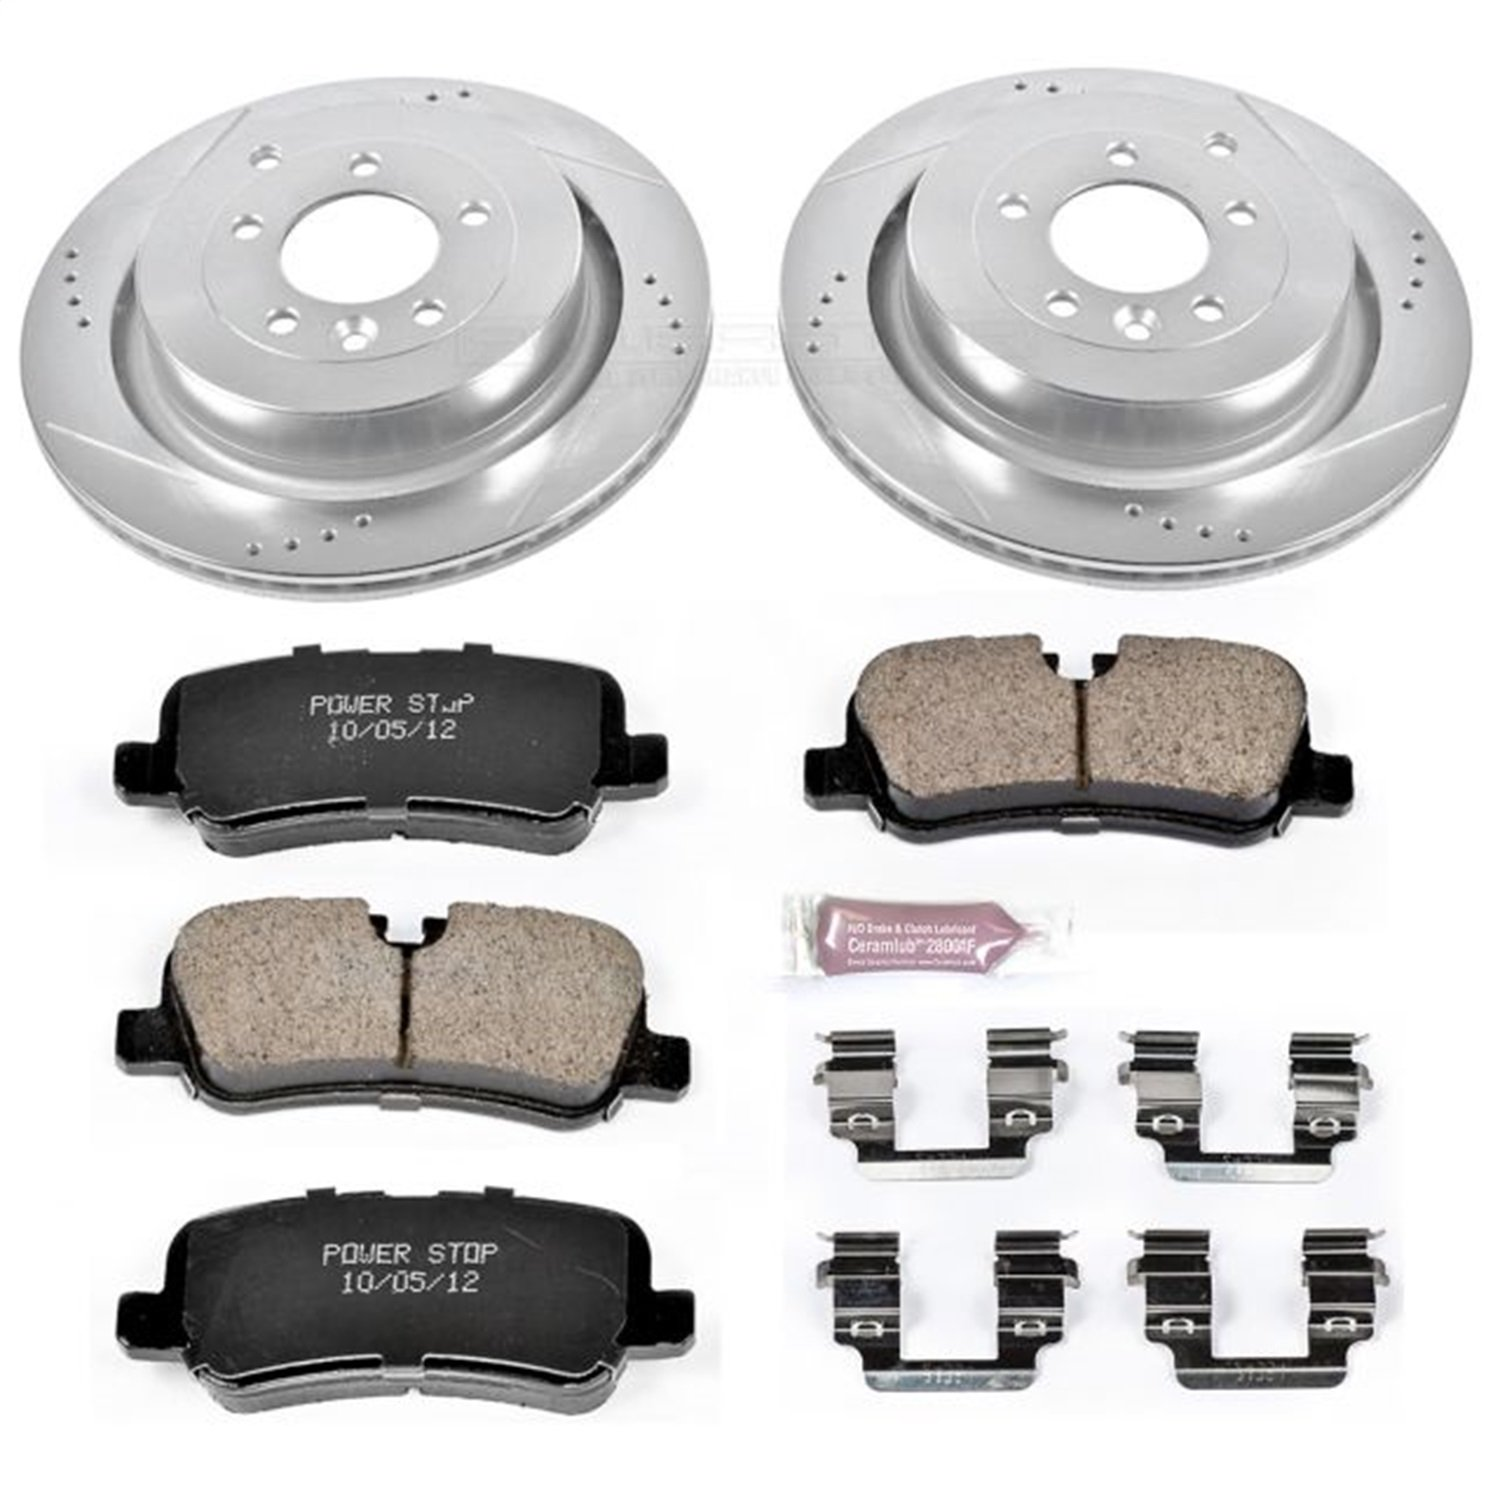 Power Stop K6564 Rear Z23 Evolution Brake Kit with Drilled//Slotted Rotors and Ceramic Brake Pads